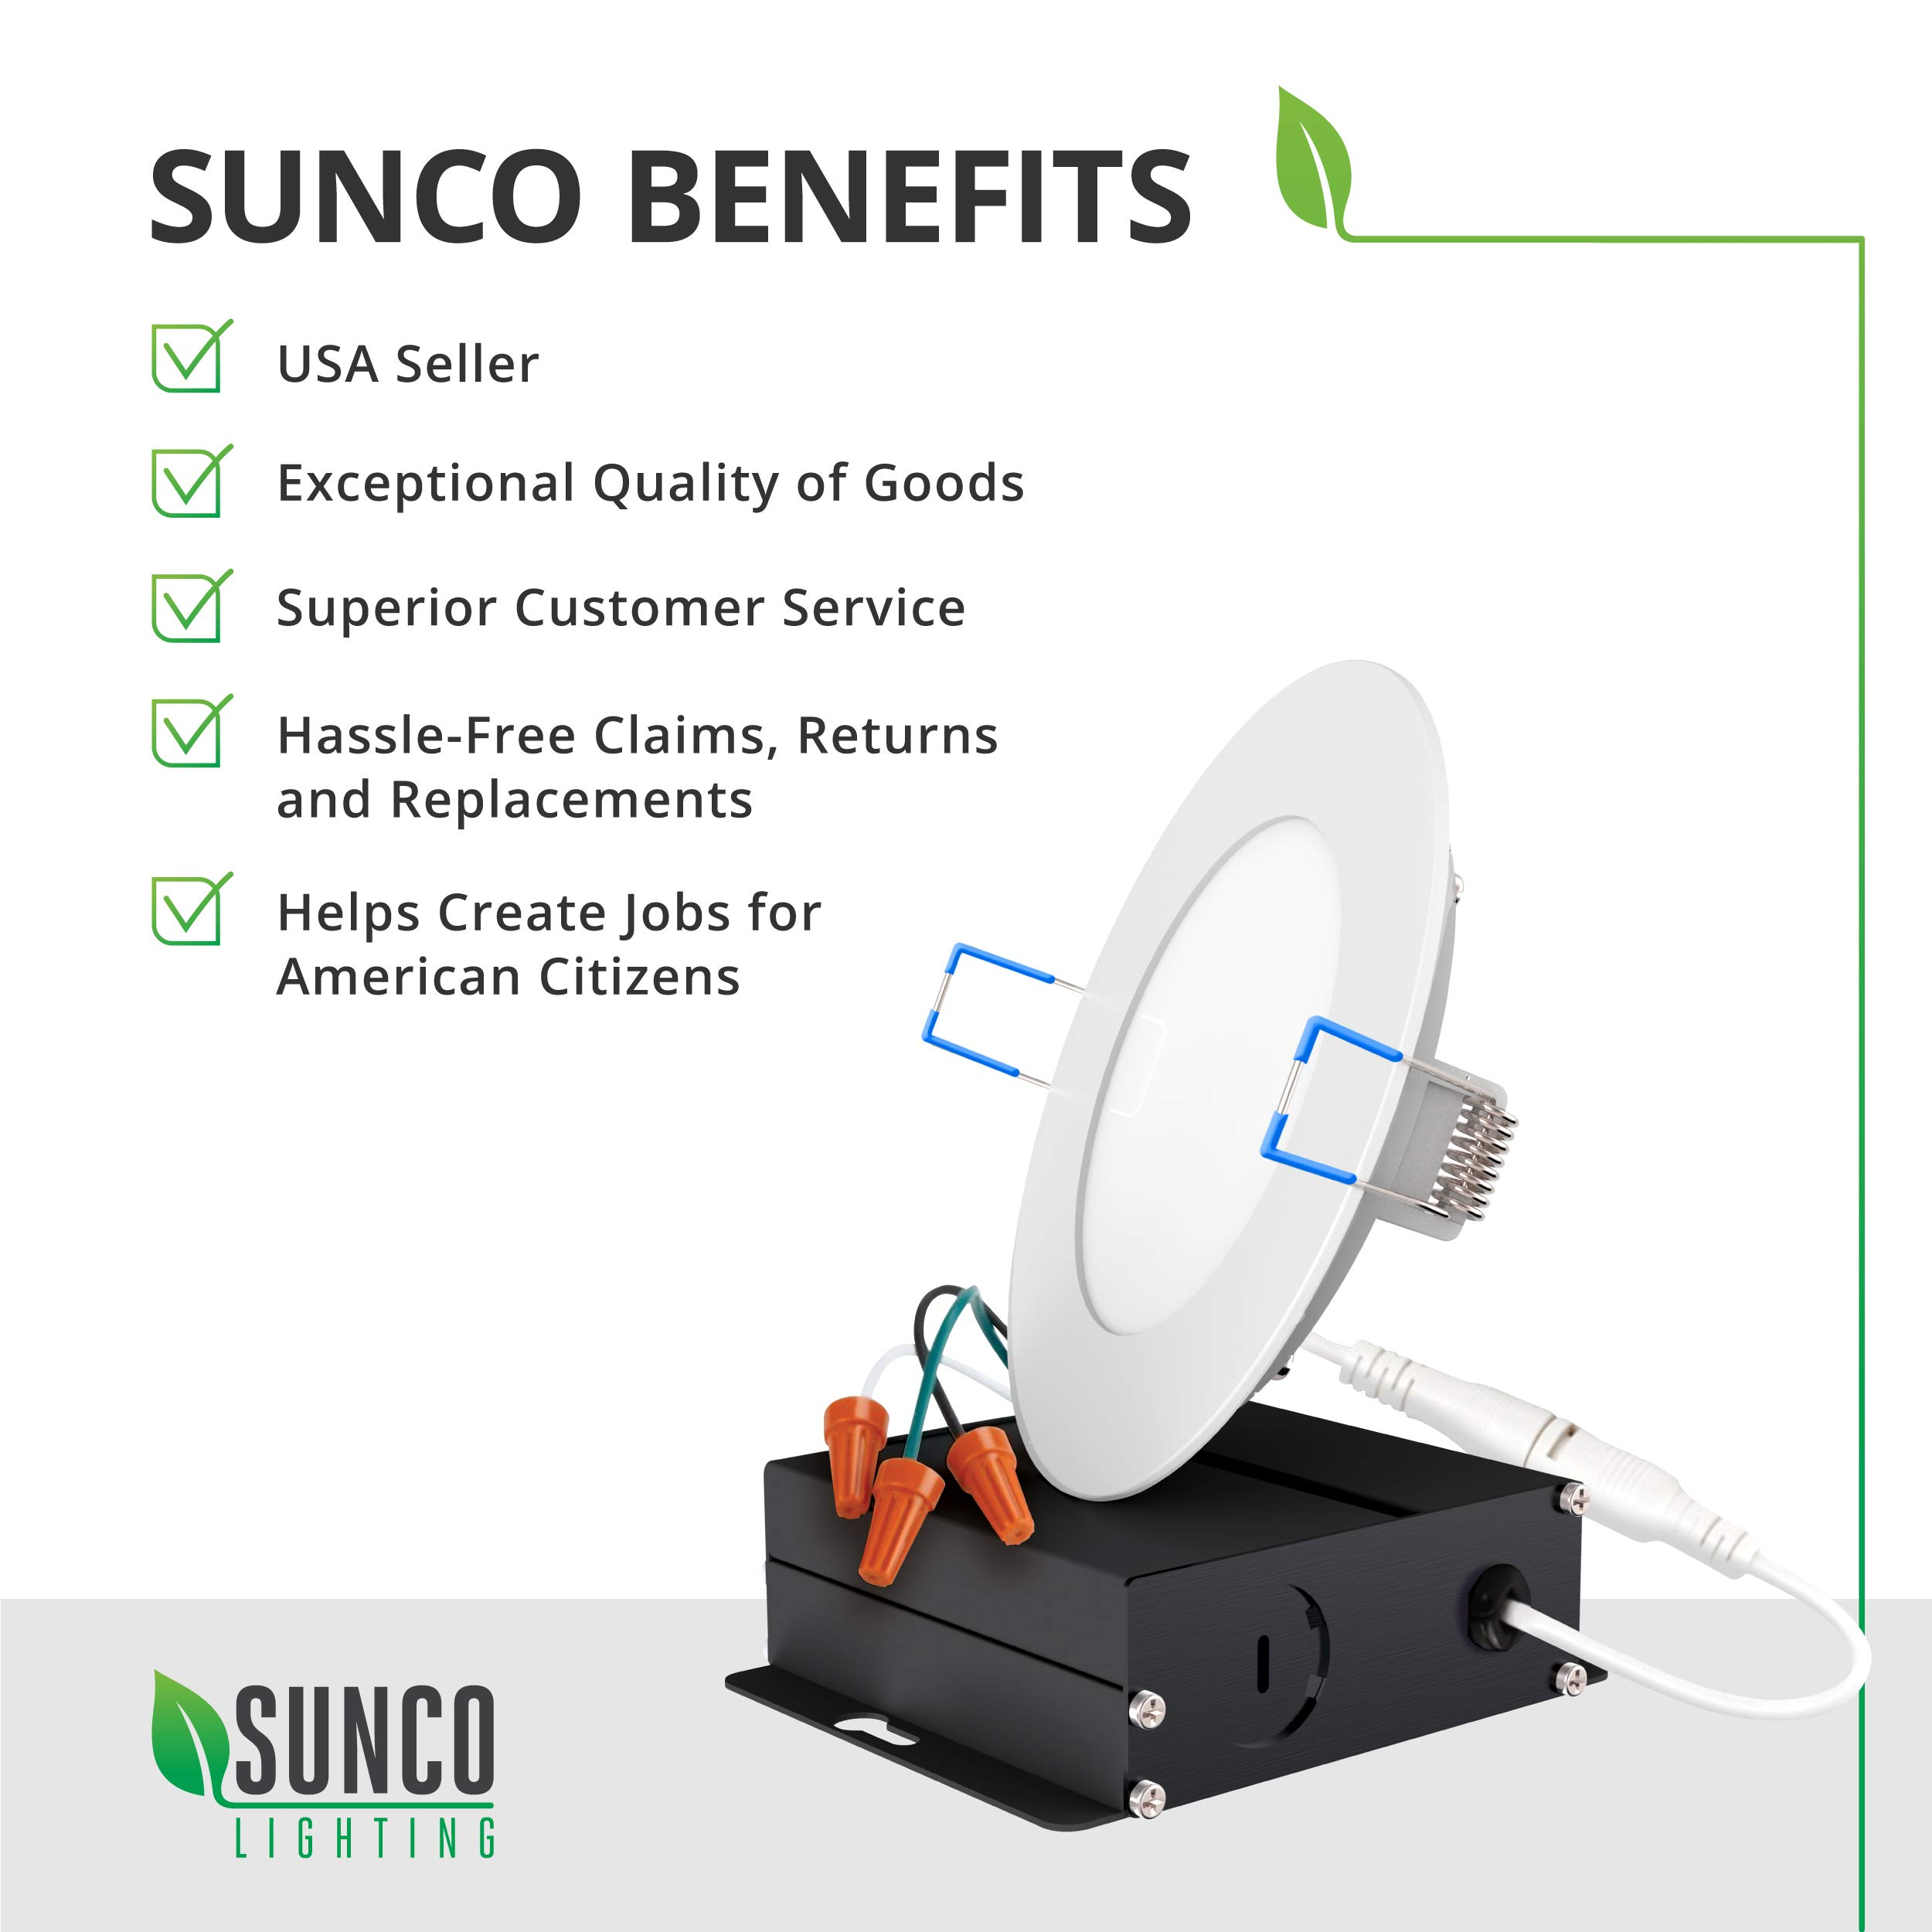 Sunco Lighting 16 Pack 4 Inch Slim LED Downlight with Junction Box,10W=60W, 650 LM, Dimmable, 5000K Daylight, Recessed Jbox Fixture, IC Rated, Simple Retrofit Installation - ETL & Energy Star by Sunco Lighting (Image #9)